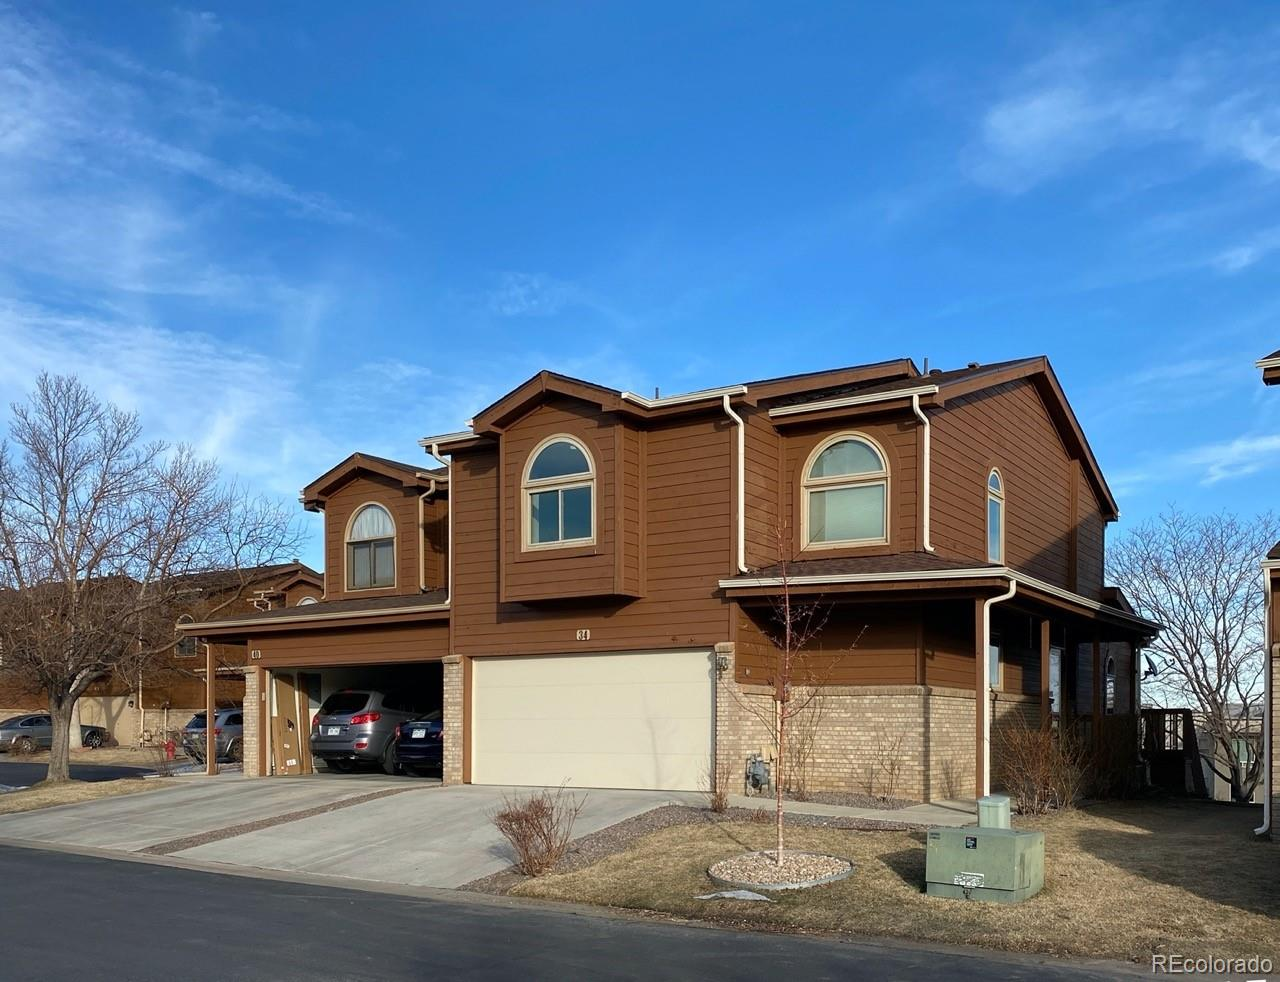 34 Wright Court, Lakewood, CO 80228 - Lakewood, CO real estate listing